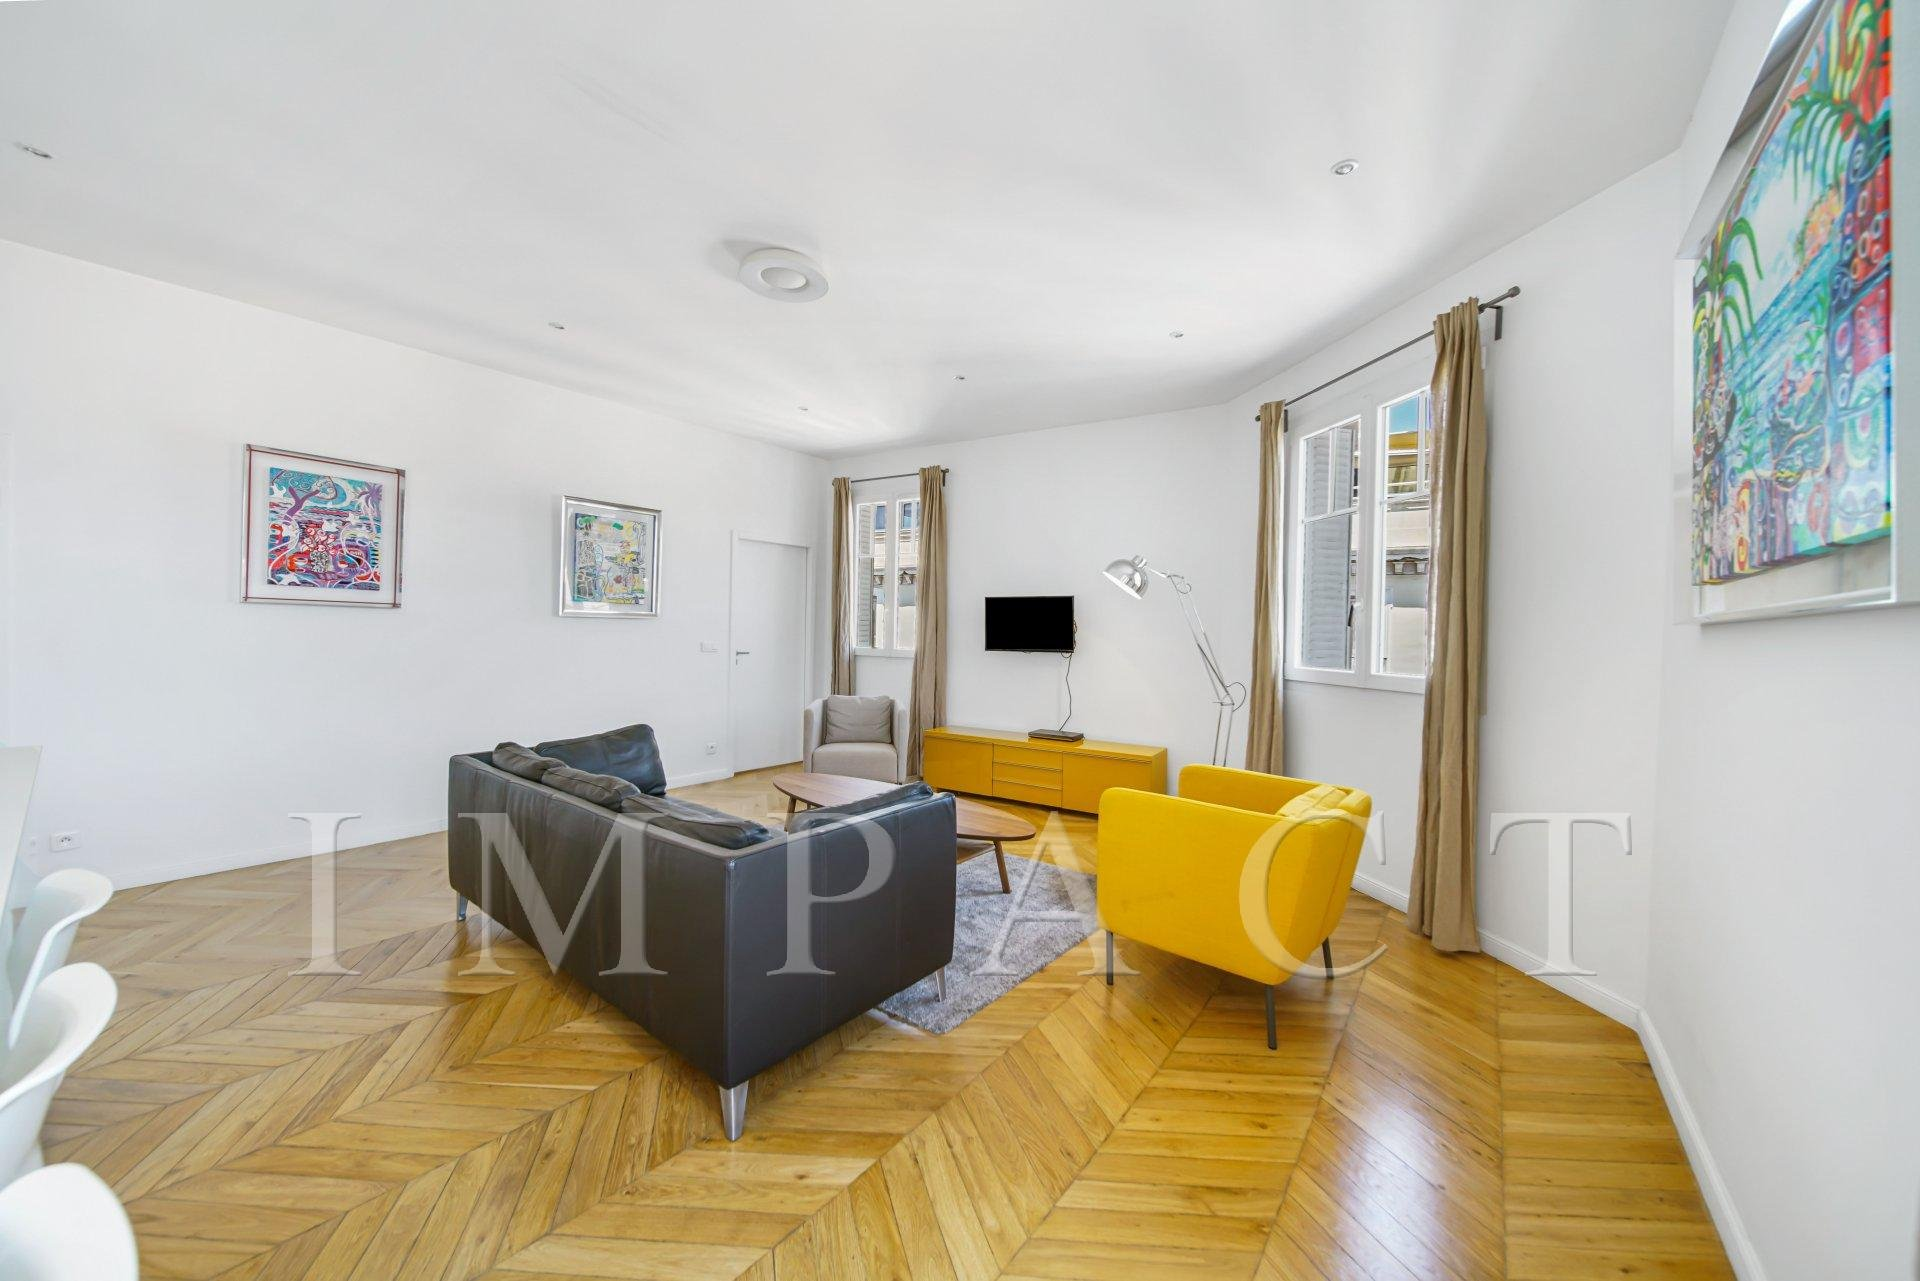 Renovated apartment to rent, center of Cannes